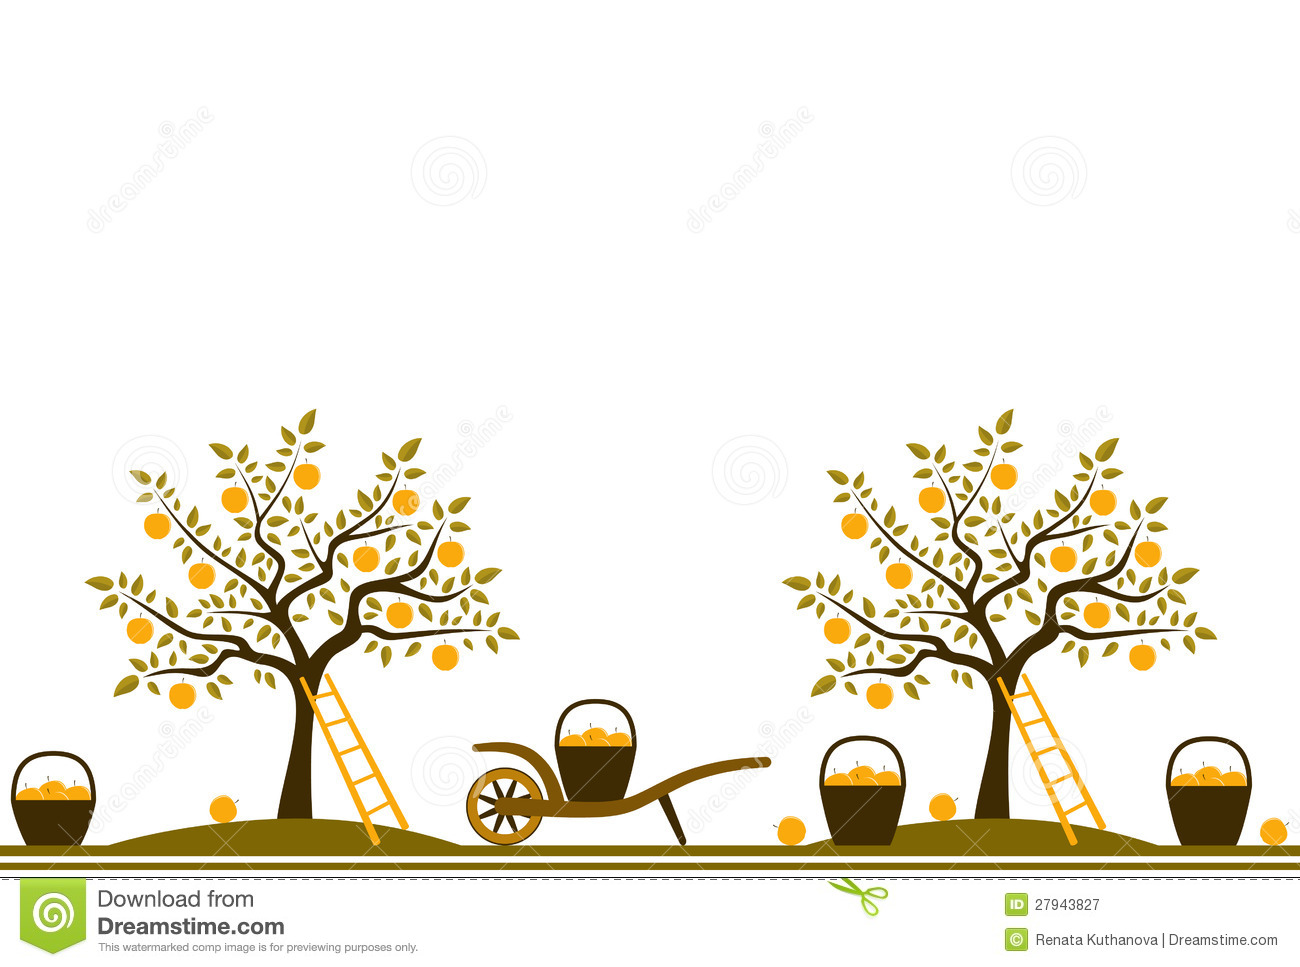 Tree being harvested clipart.